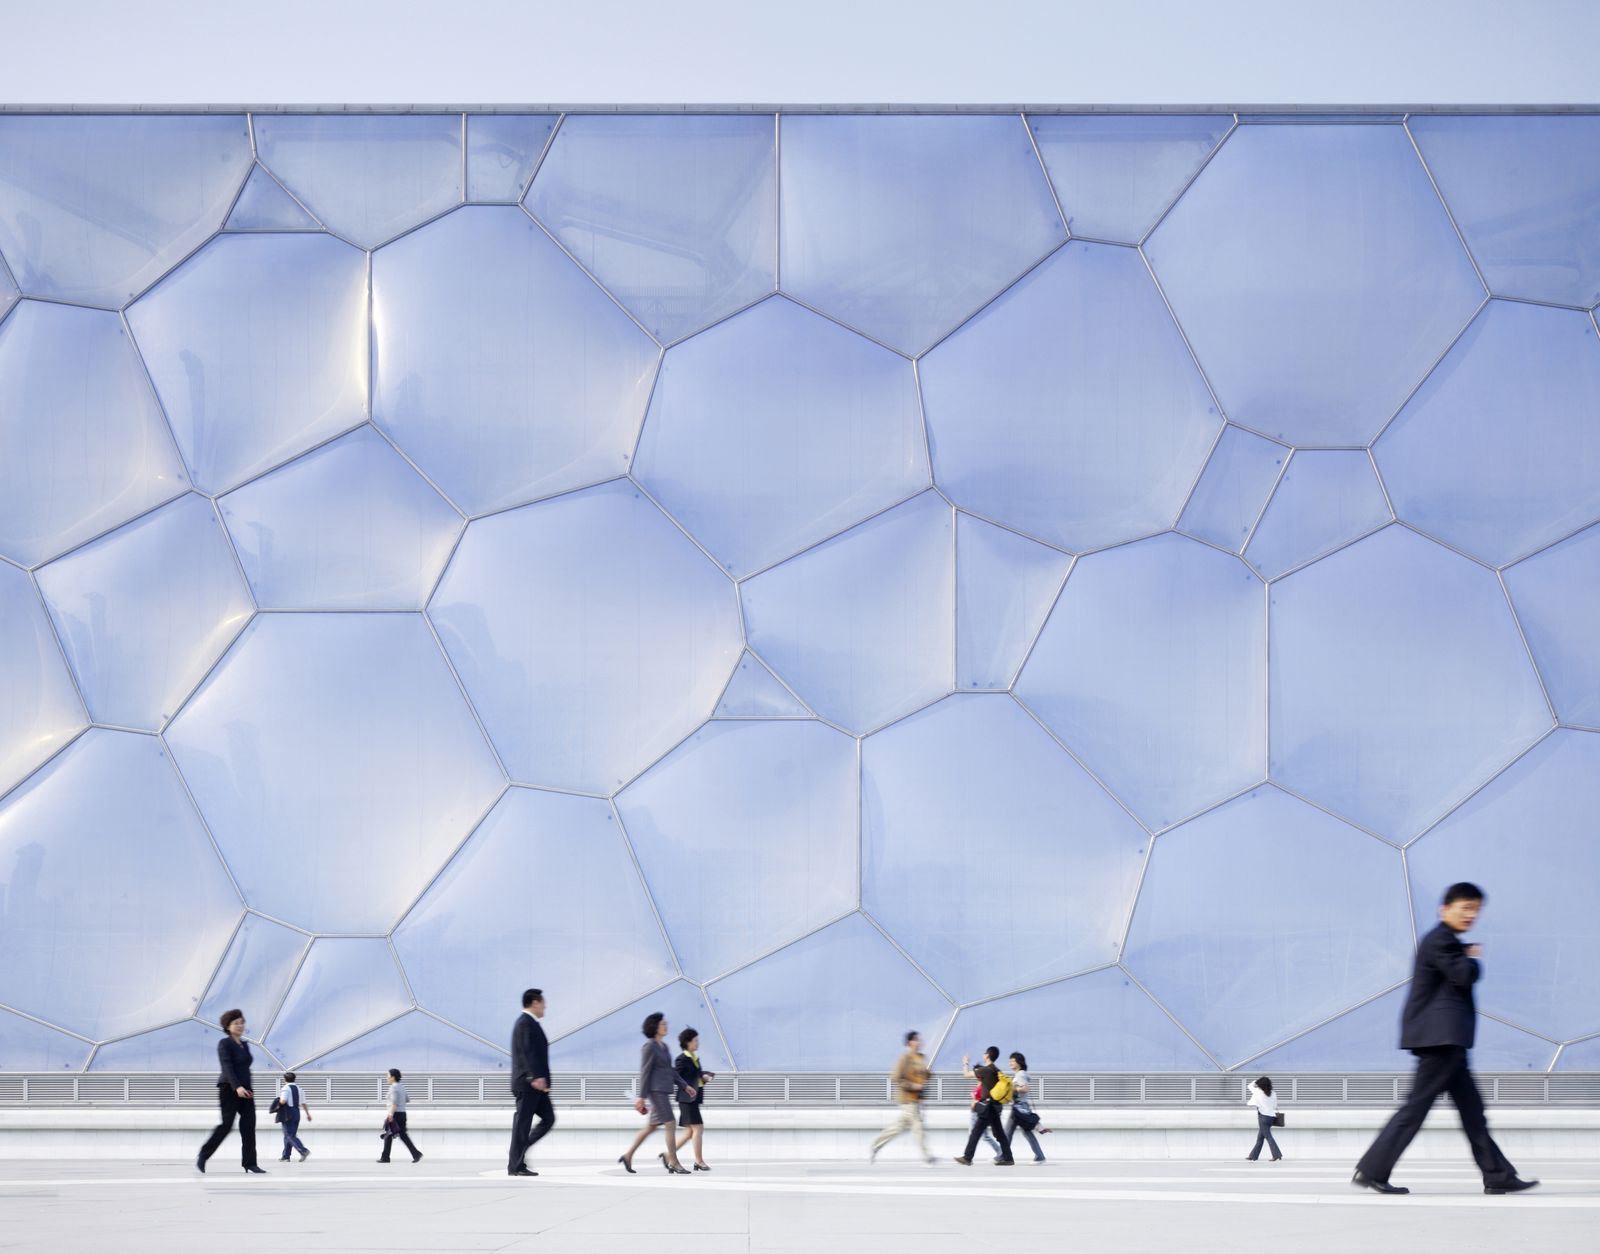 National Aquatics Center, The Water Cube, built for the 2008 Olympics, Beijing, China, Asia